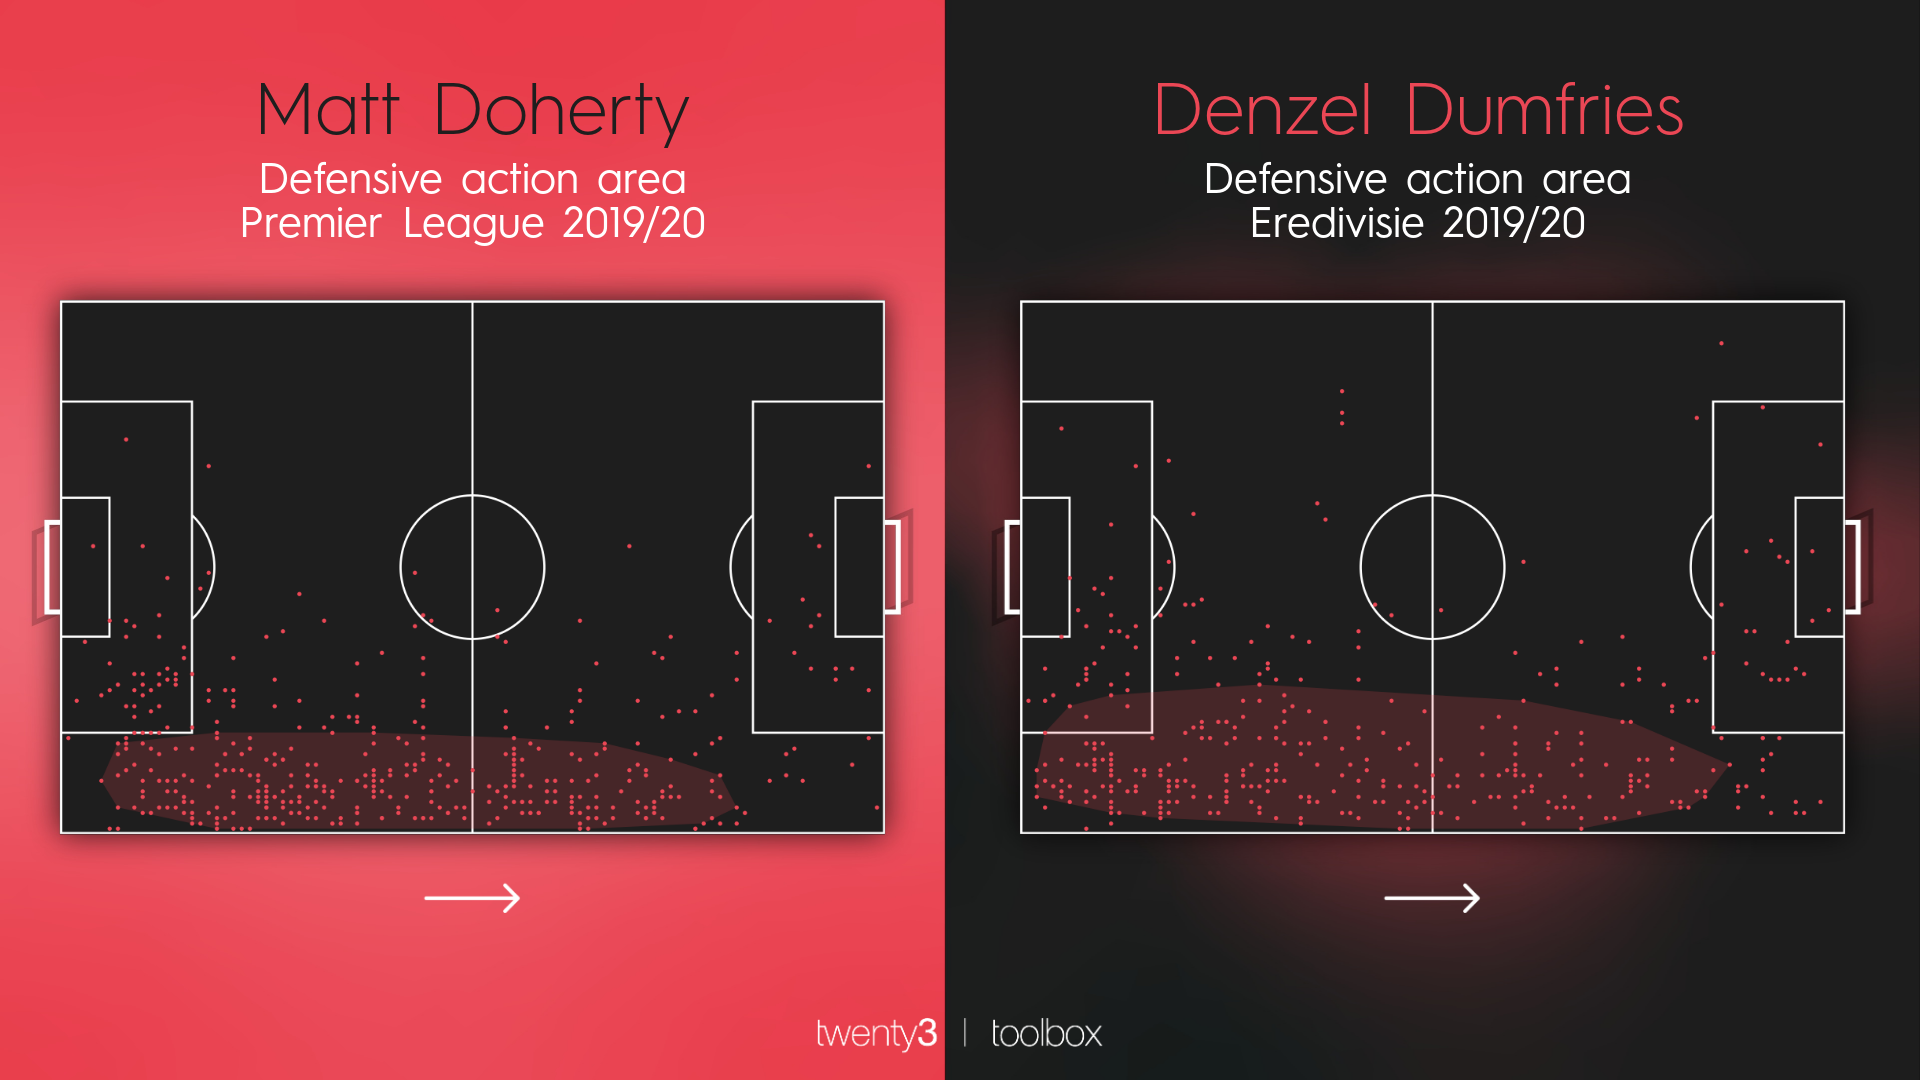 Defensive action areas for Wolves' Matt Doherty and PSV's Denzel Dumfries.